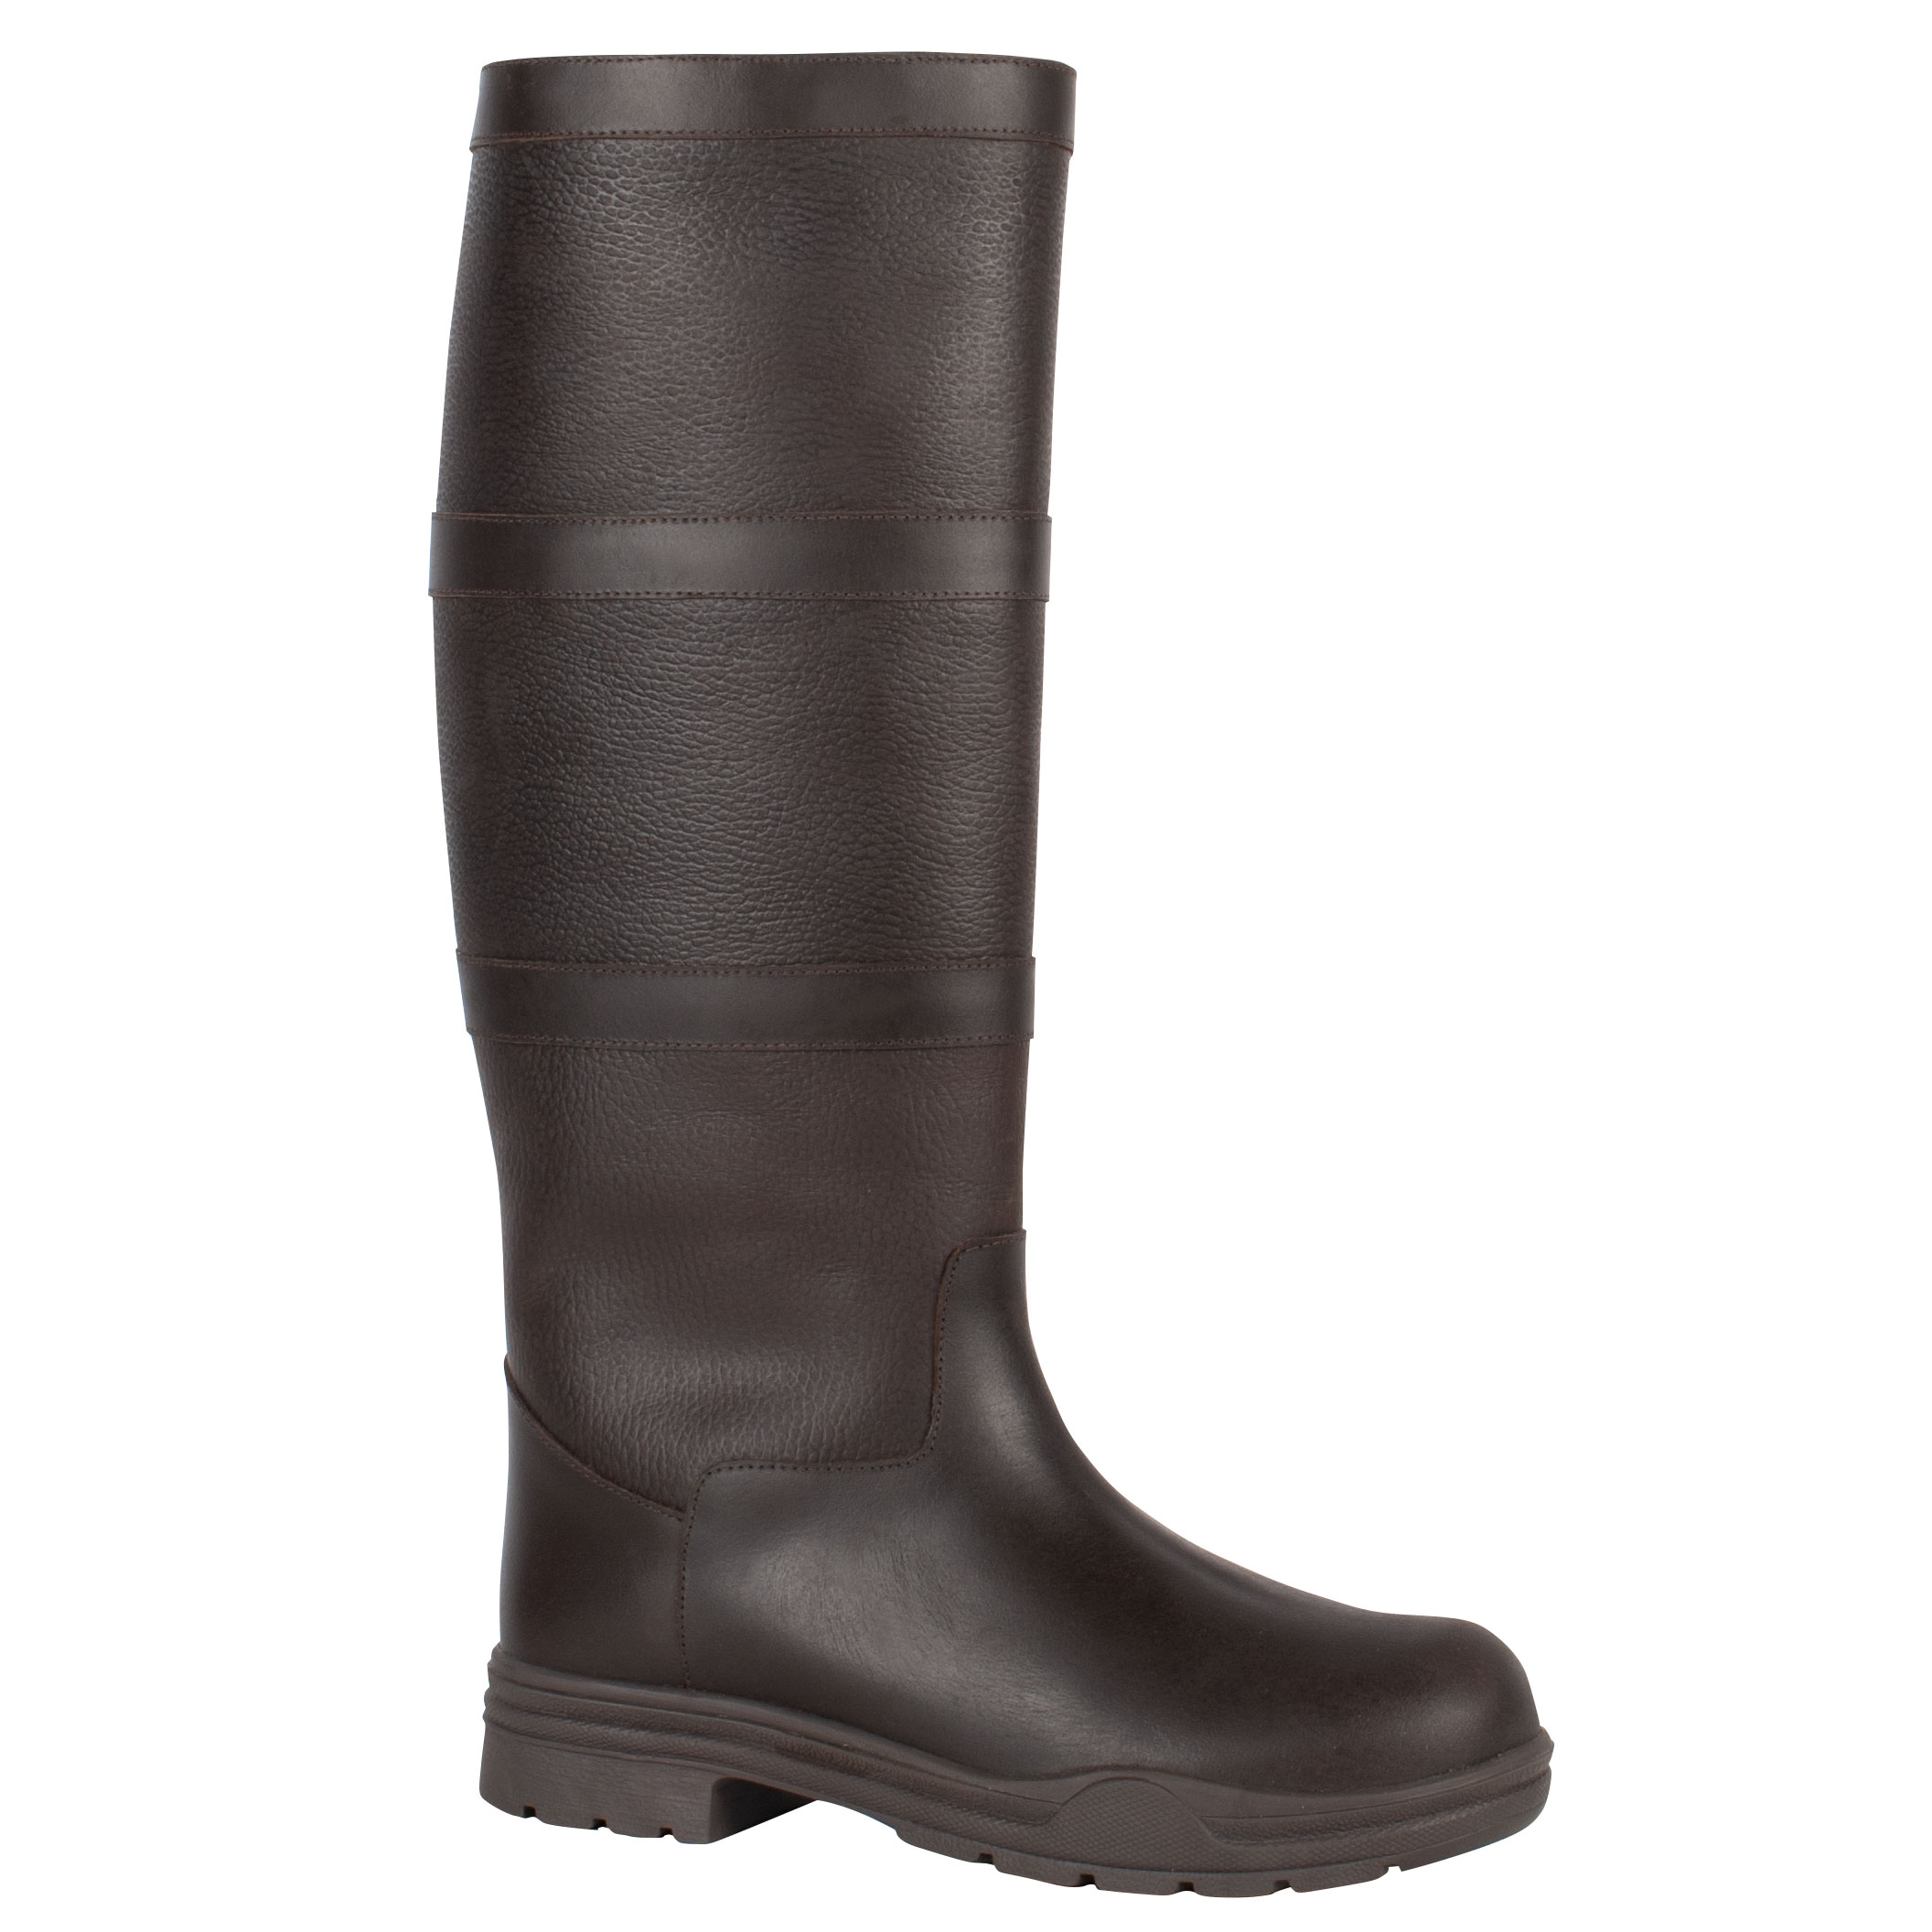 Mondoni Country Boots donkerbruin maat:39